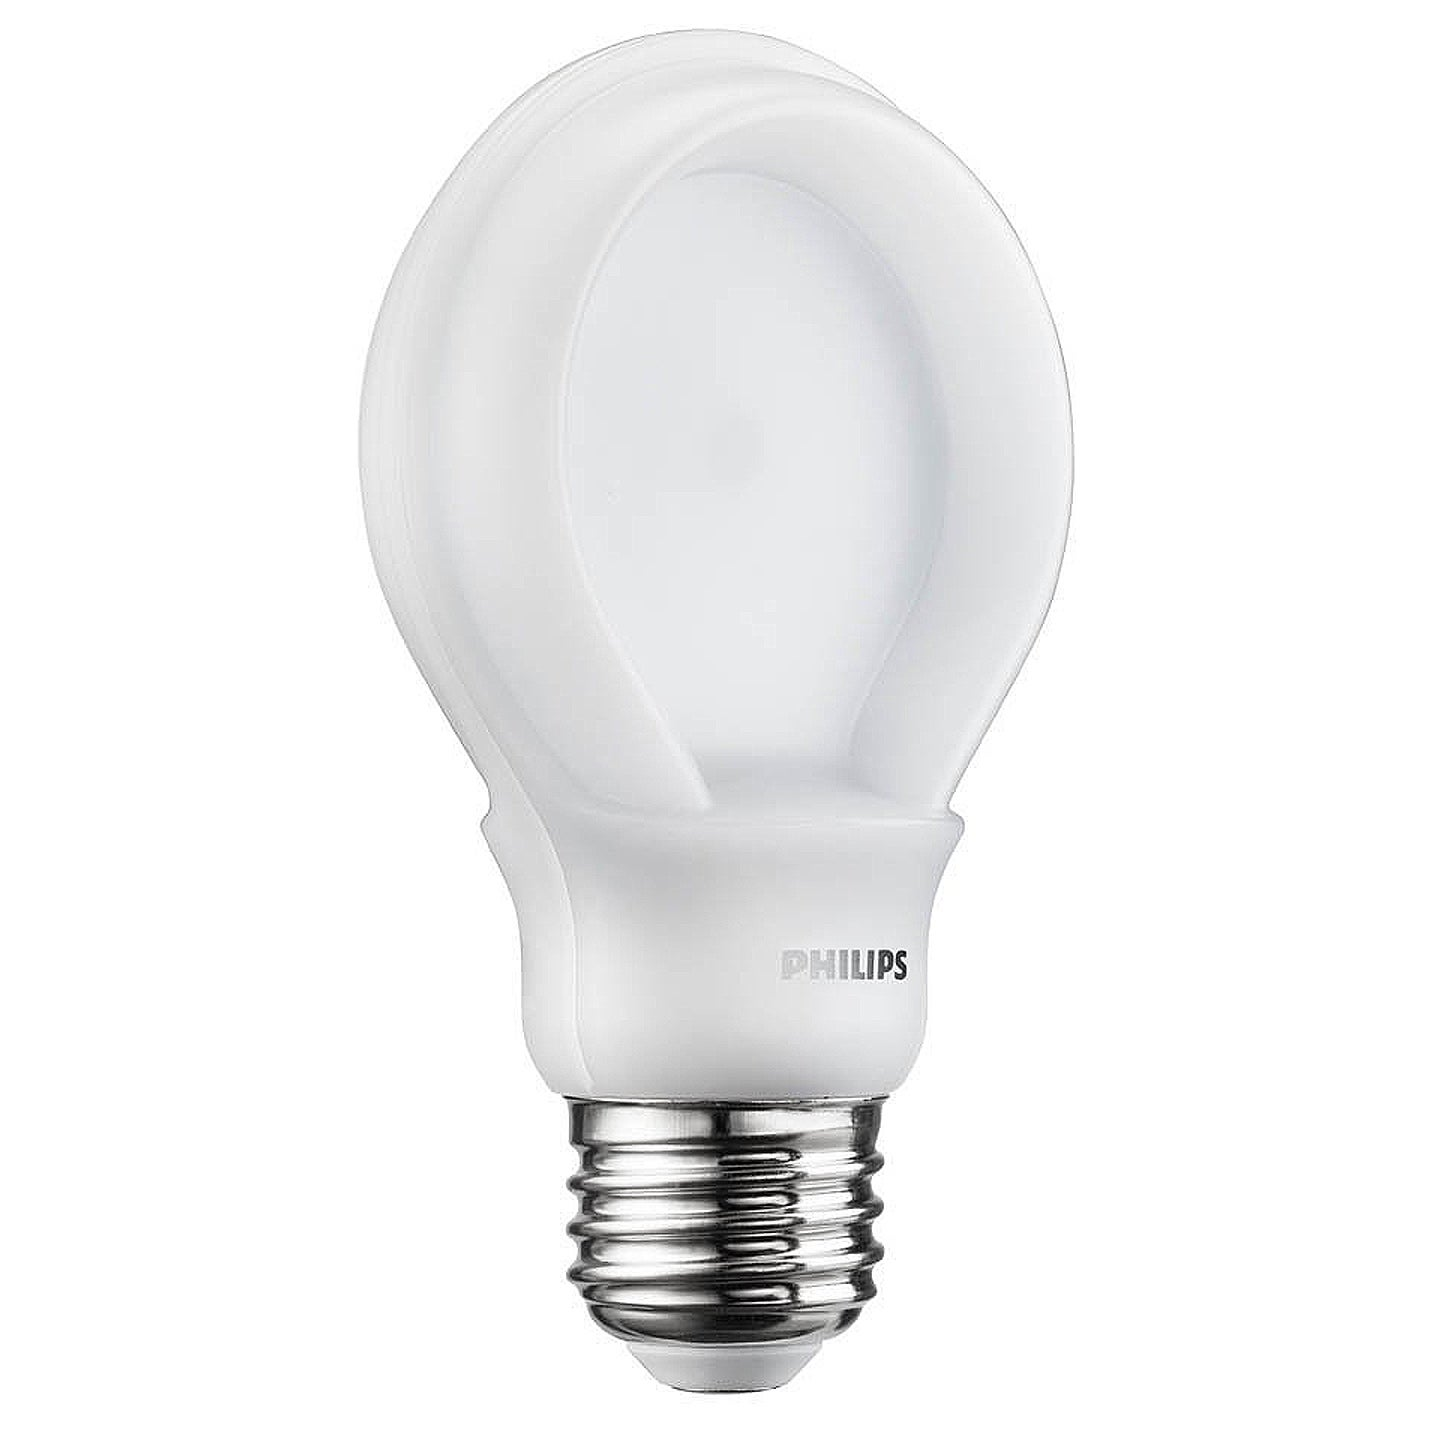 Philips 452789 13 Watt A19 Soft White SlimStyle Dimmable ...